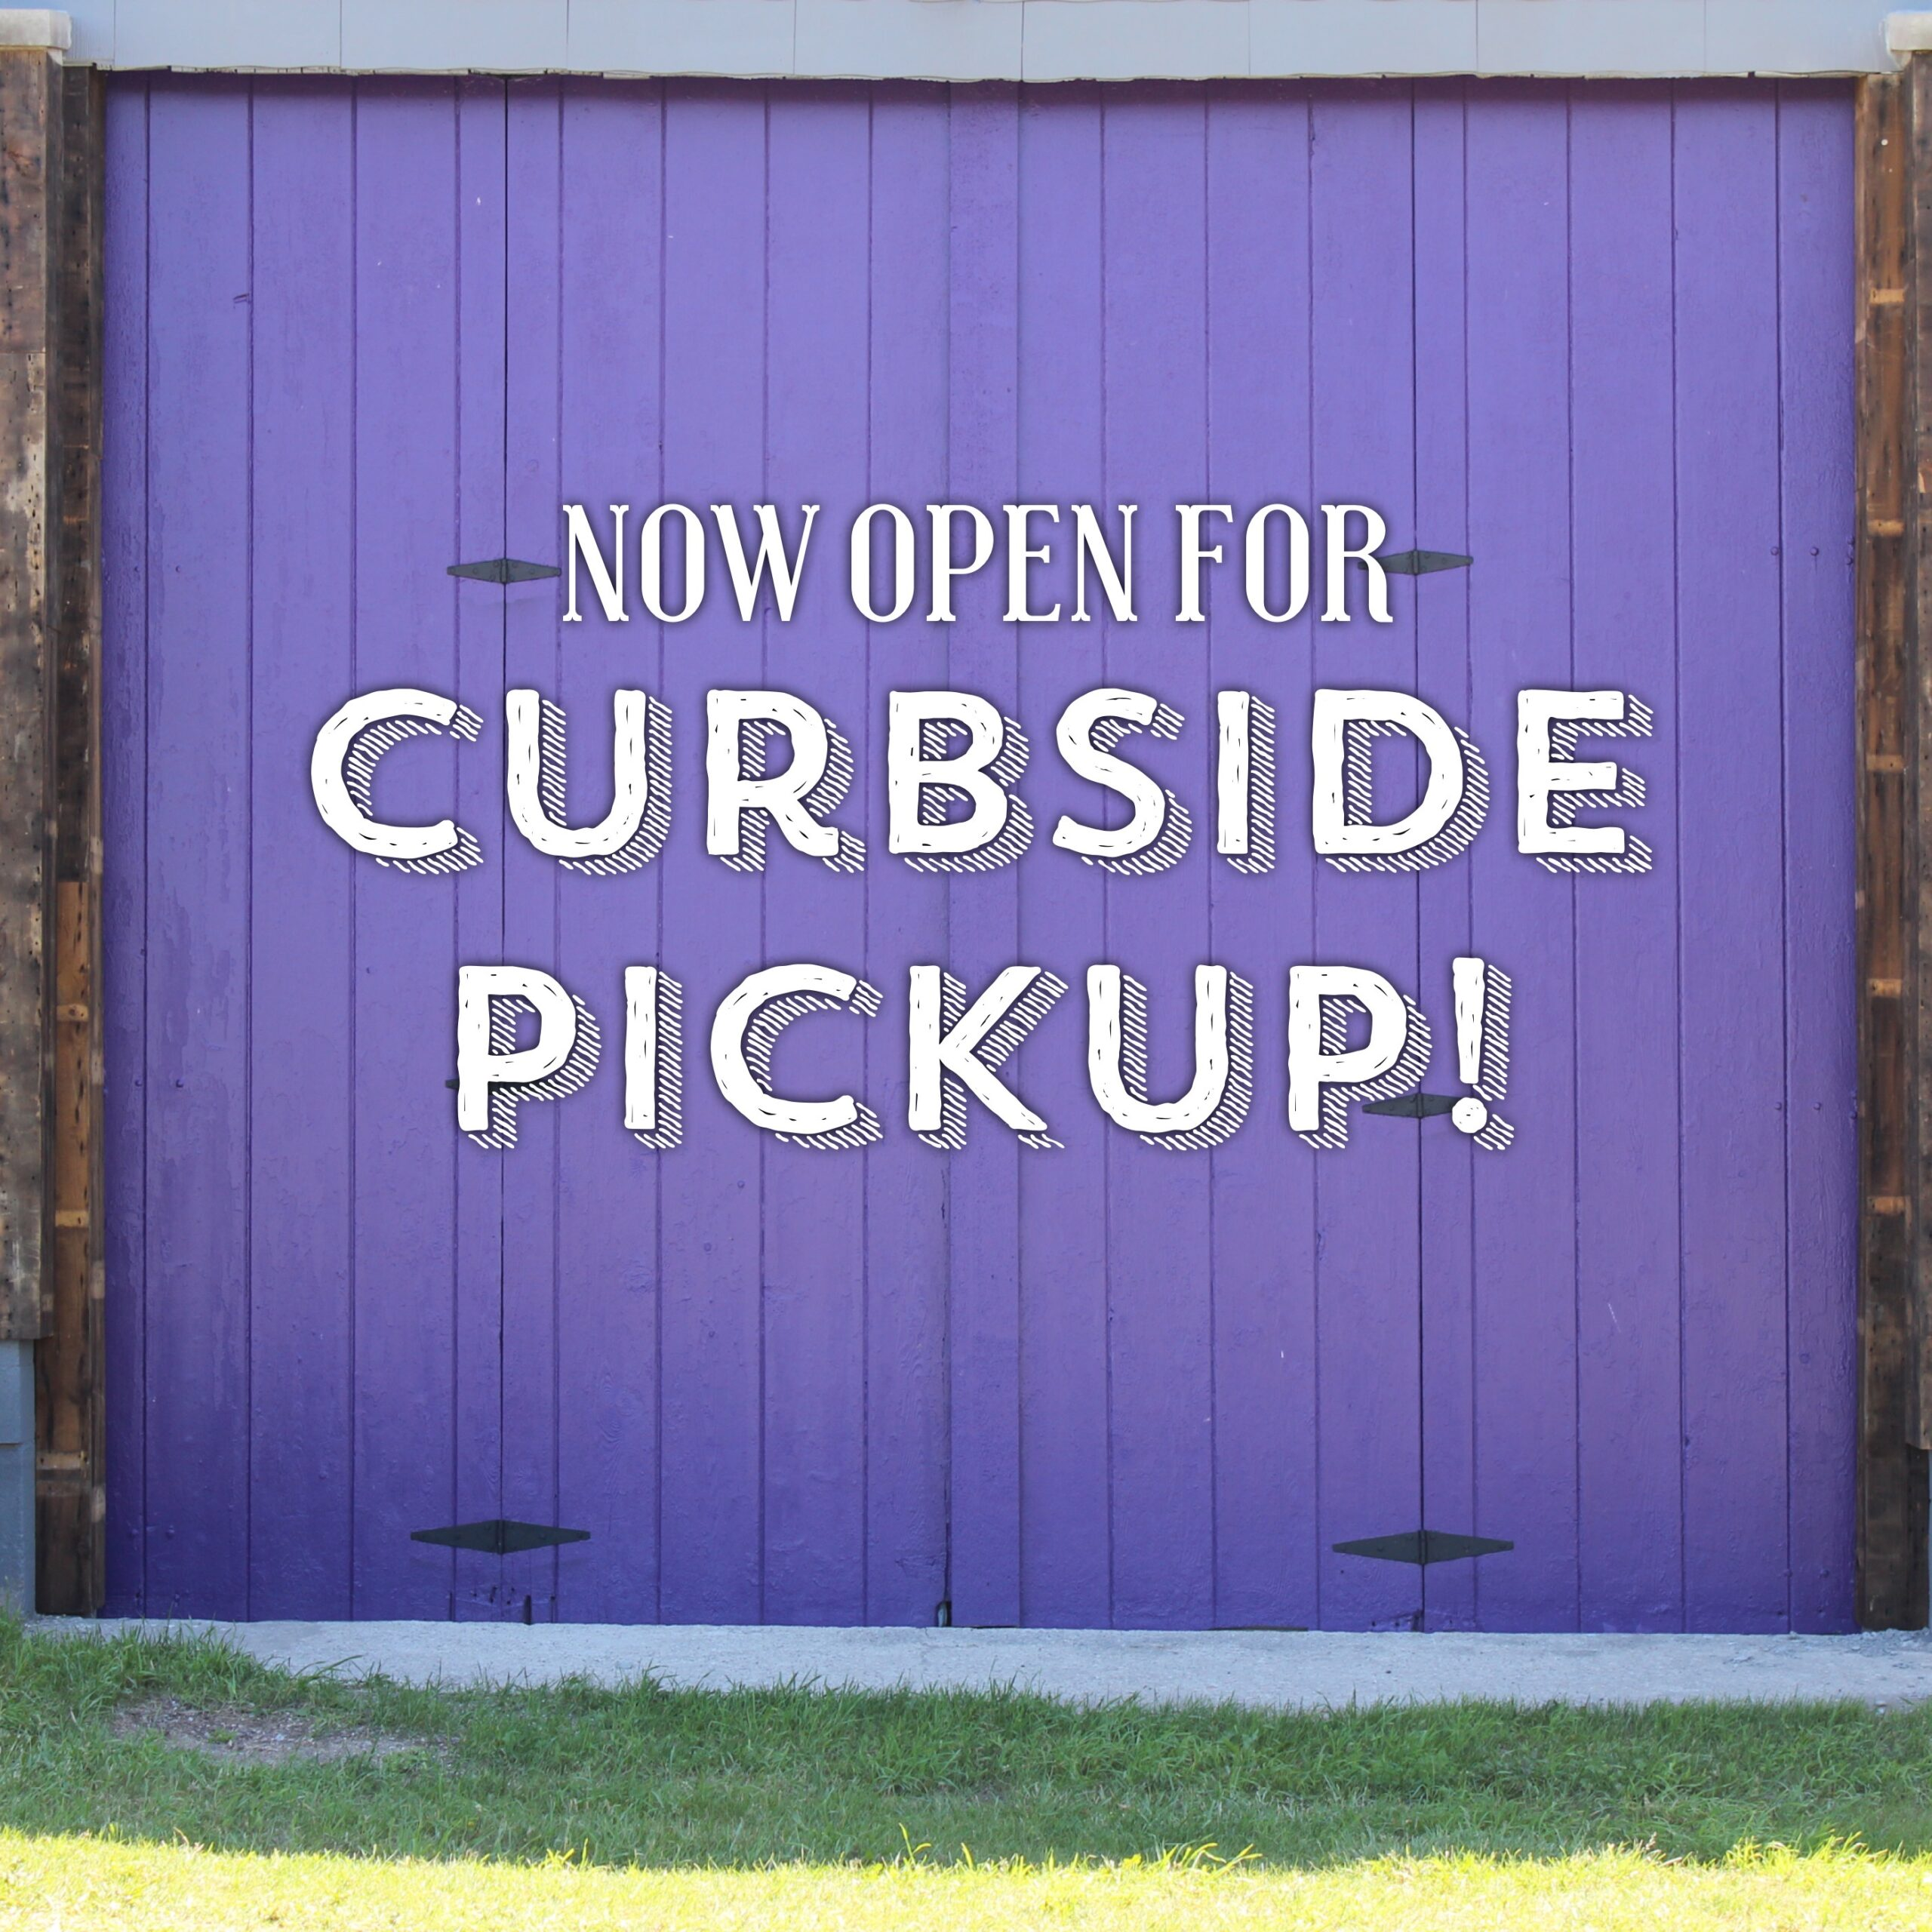 Open for Curbside Pickup!